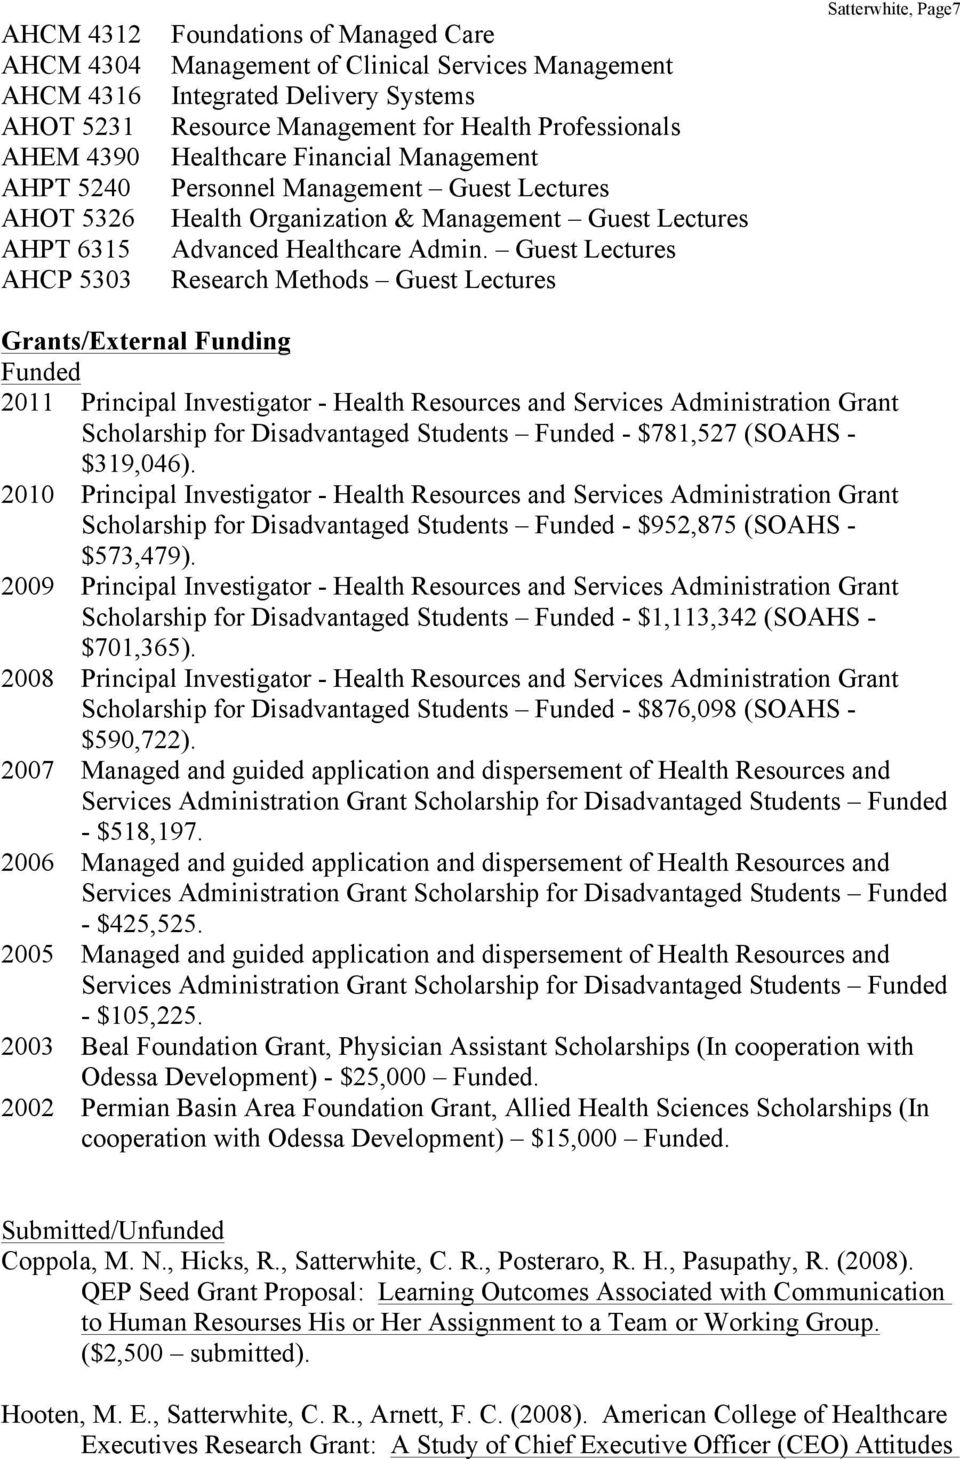 Guest Lectures Research Methods Guest Lectures Satterwhite, Page7 Grants/External Funding Funded 2011 Principal Investigator - Health Resources and Services Administration Grant Scholarship for